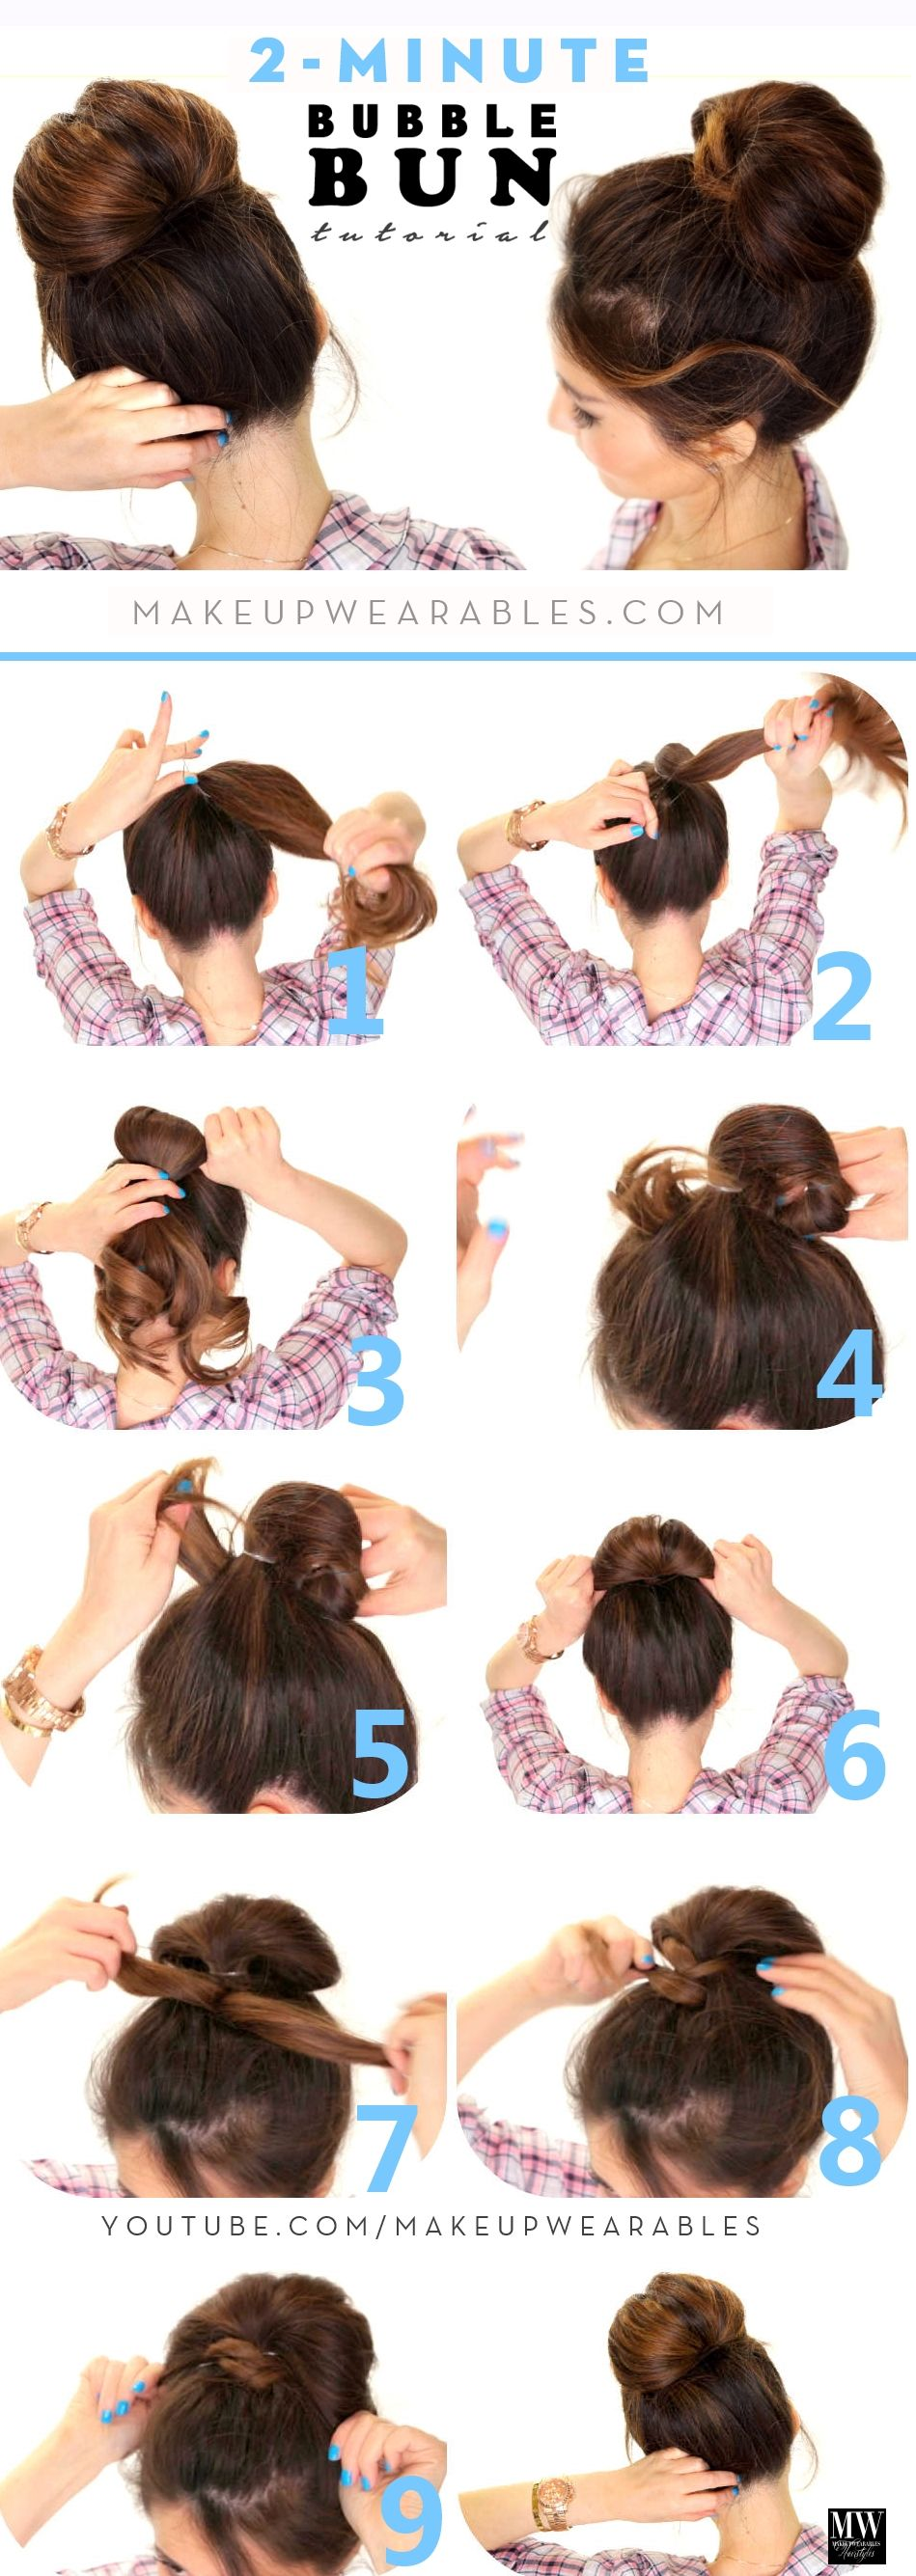 best 25+ cute lazy hairstyles ideas on pinterest | lazy hairstyles